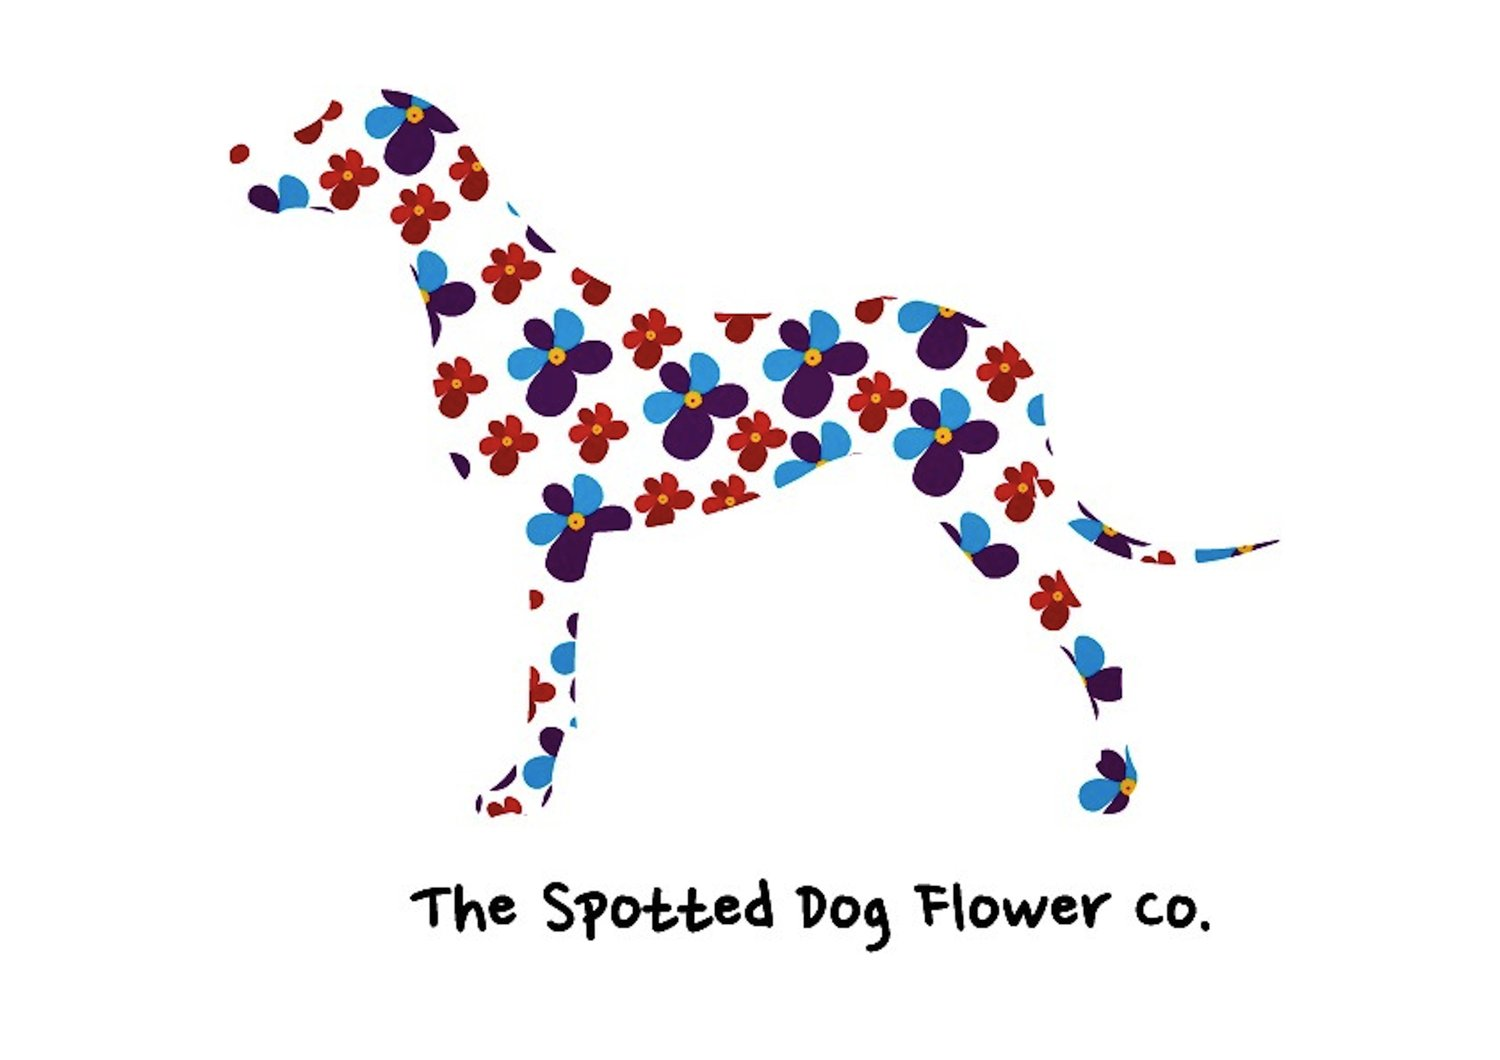 The Spotted Dog Flower Co.